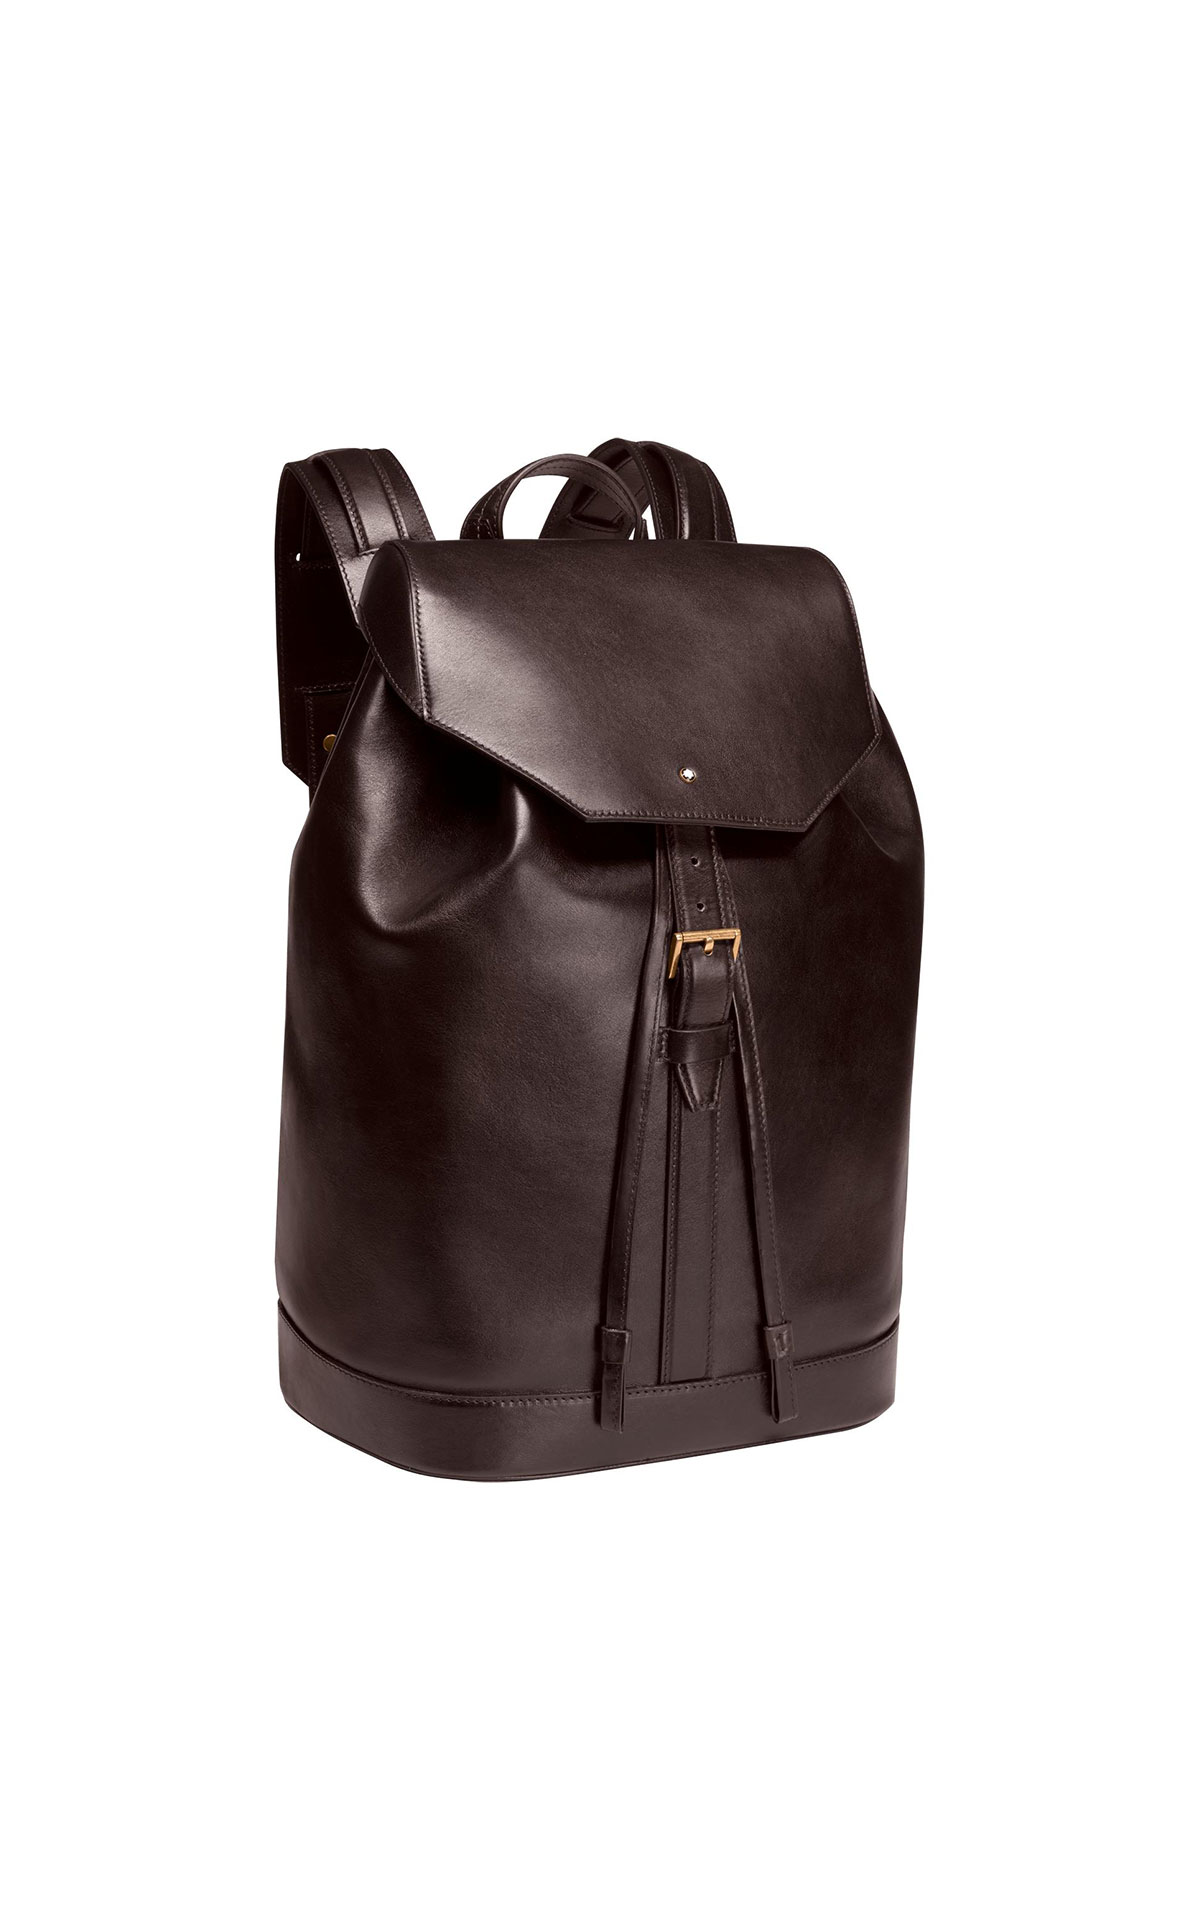 Montblanc Backpack Small, Dark Brown from Bicester Village